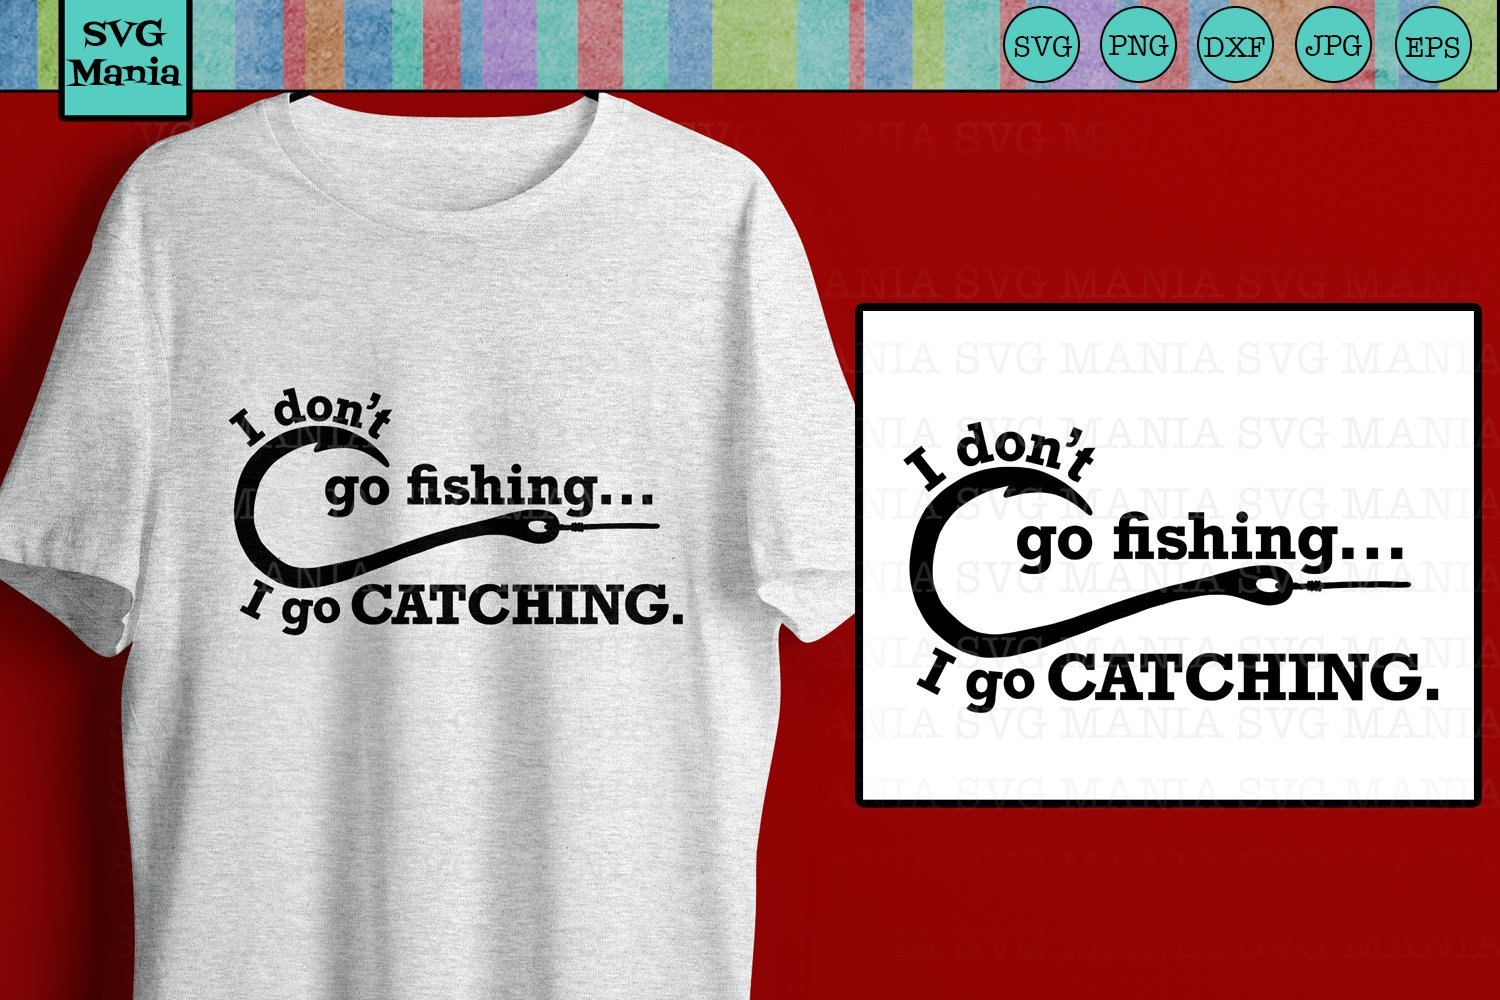 Download Funny Fishing Quote Svg File I Go Catching Svg Files Cricut 379310 Svgs Design Bundles